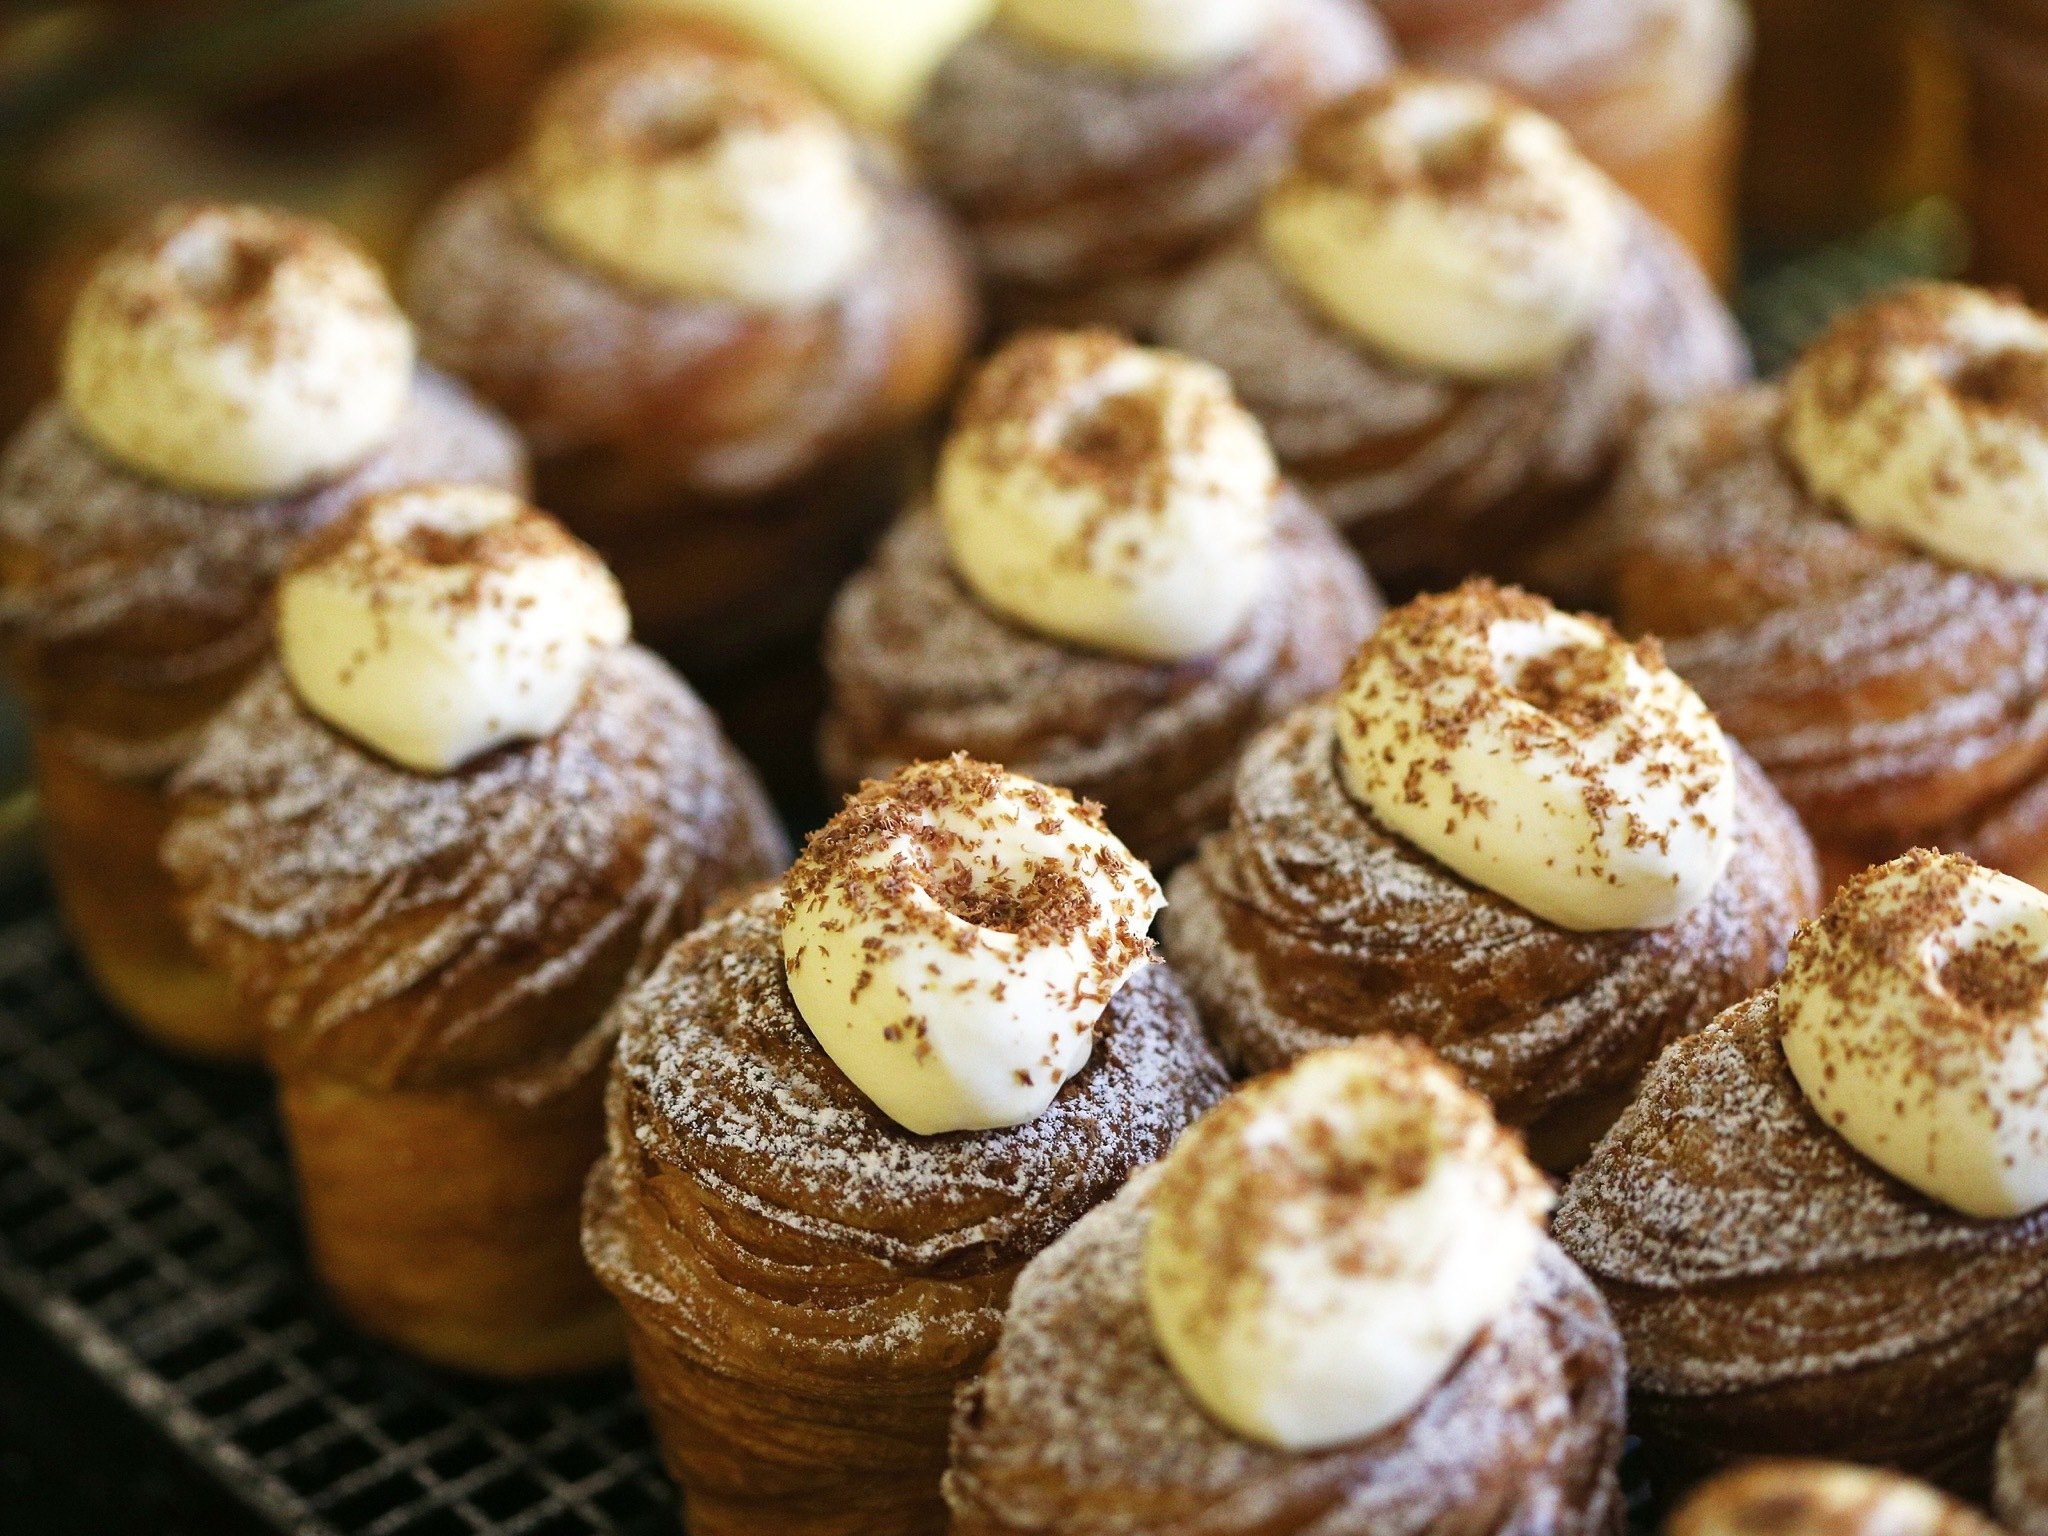 The best patisseries in Melbourne